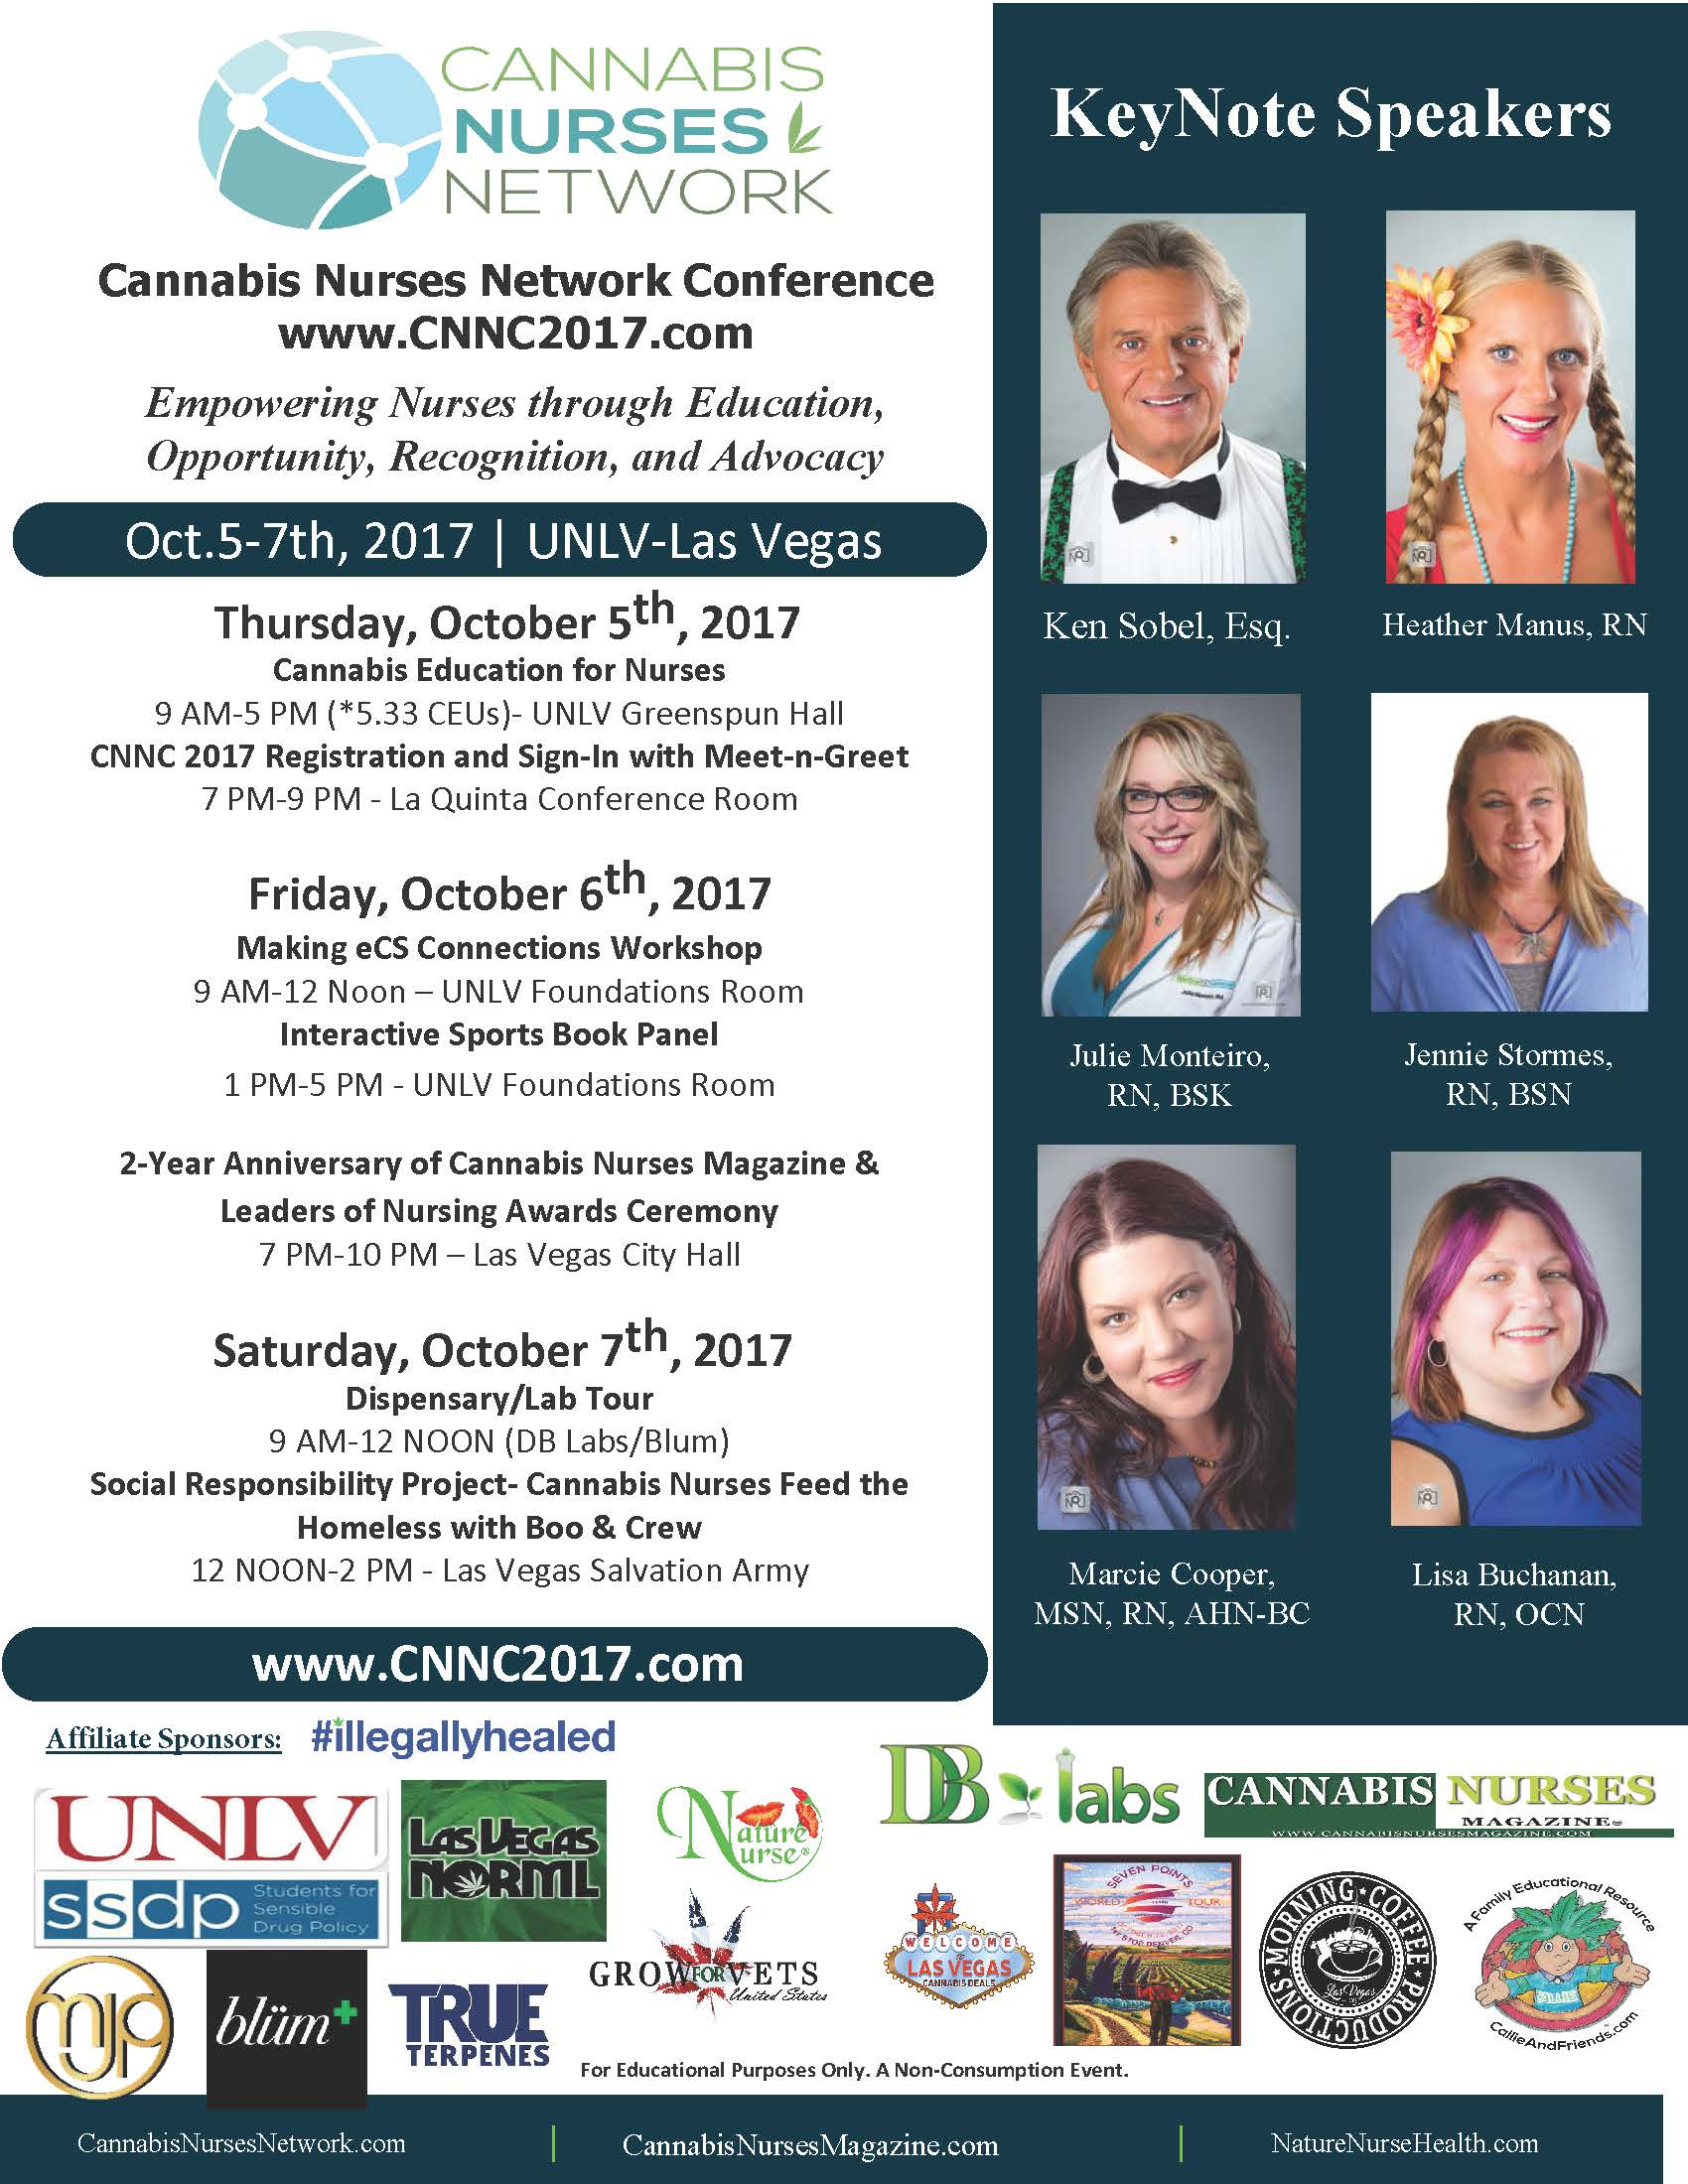 CNNC2017 Main Conference Flyer